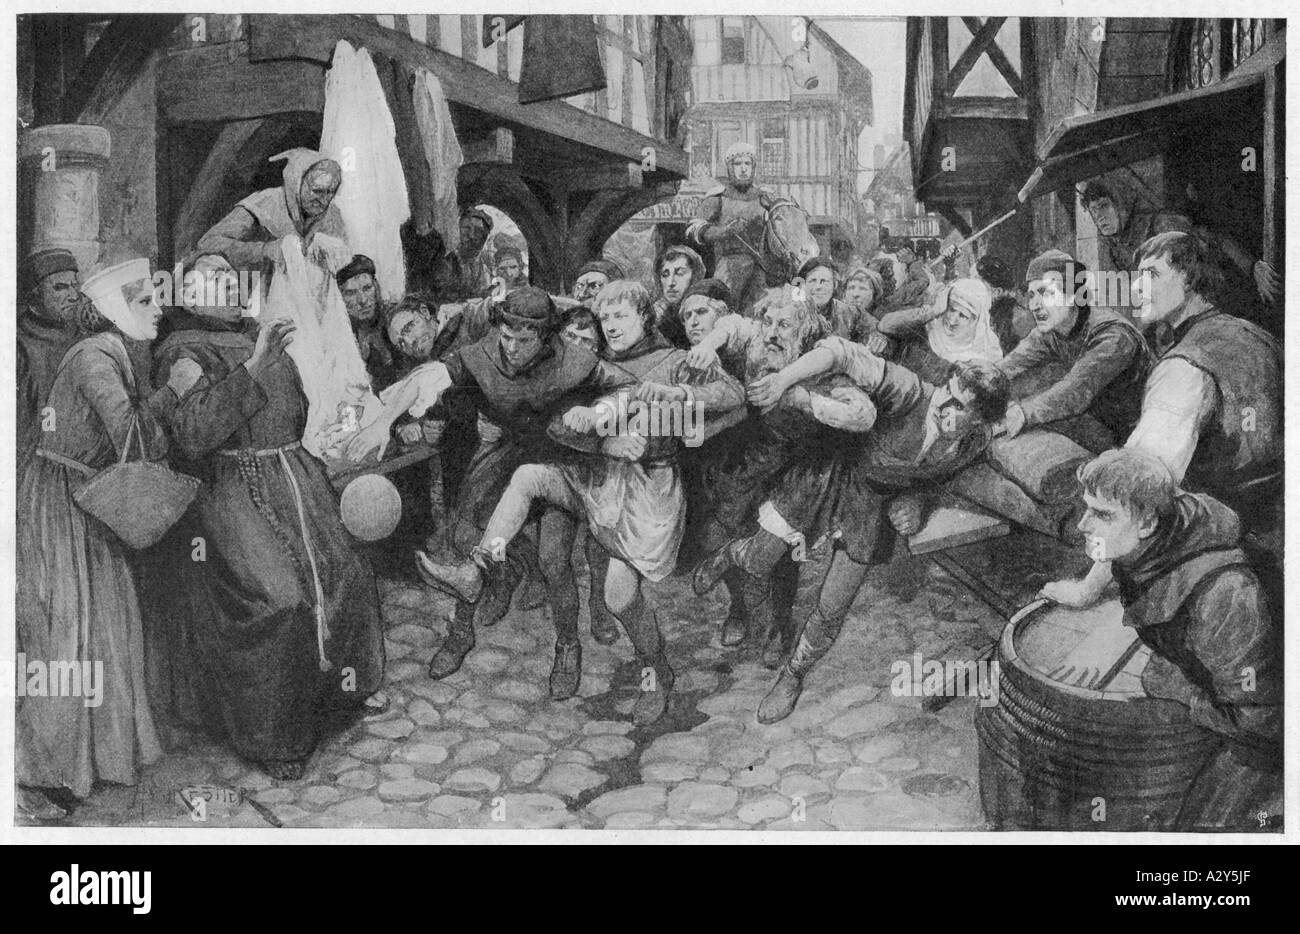 Football In Middle Ages - Stock Image